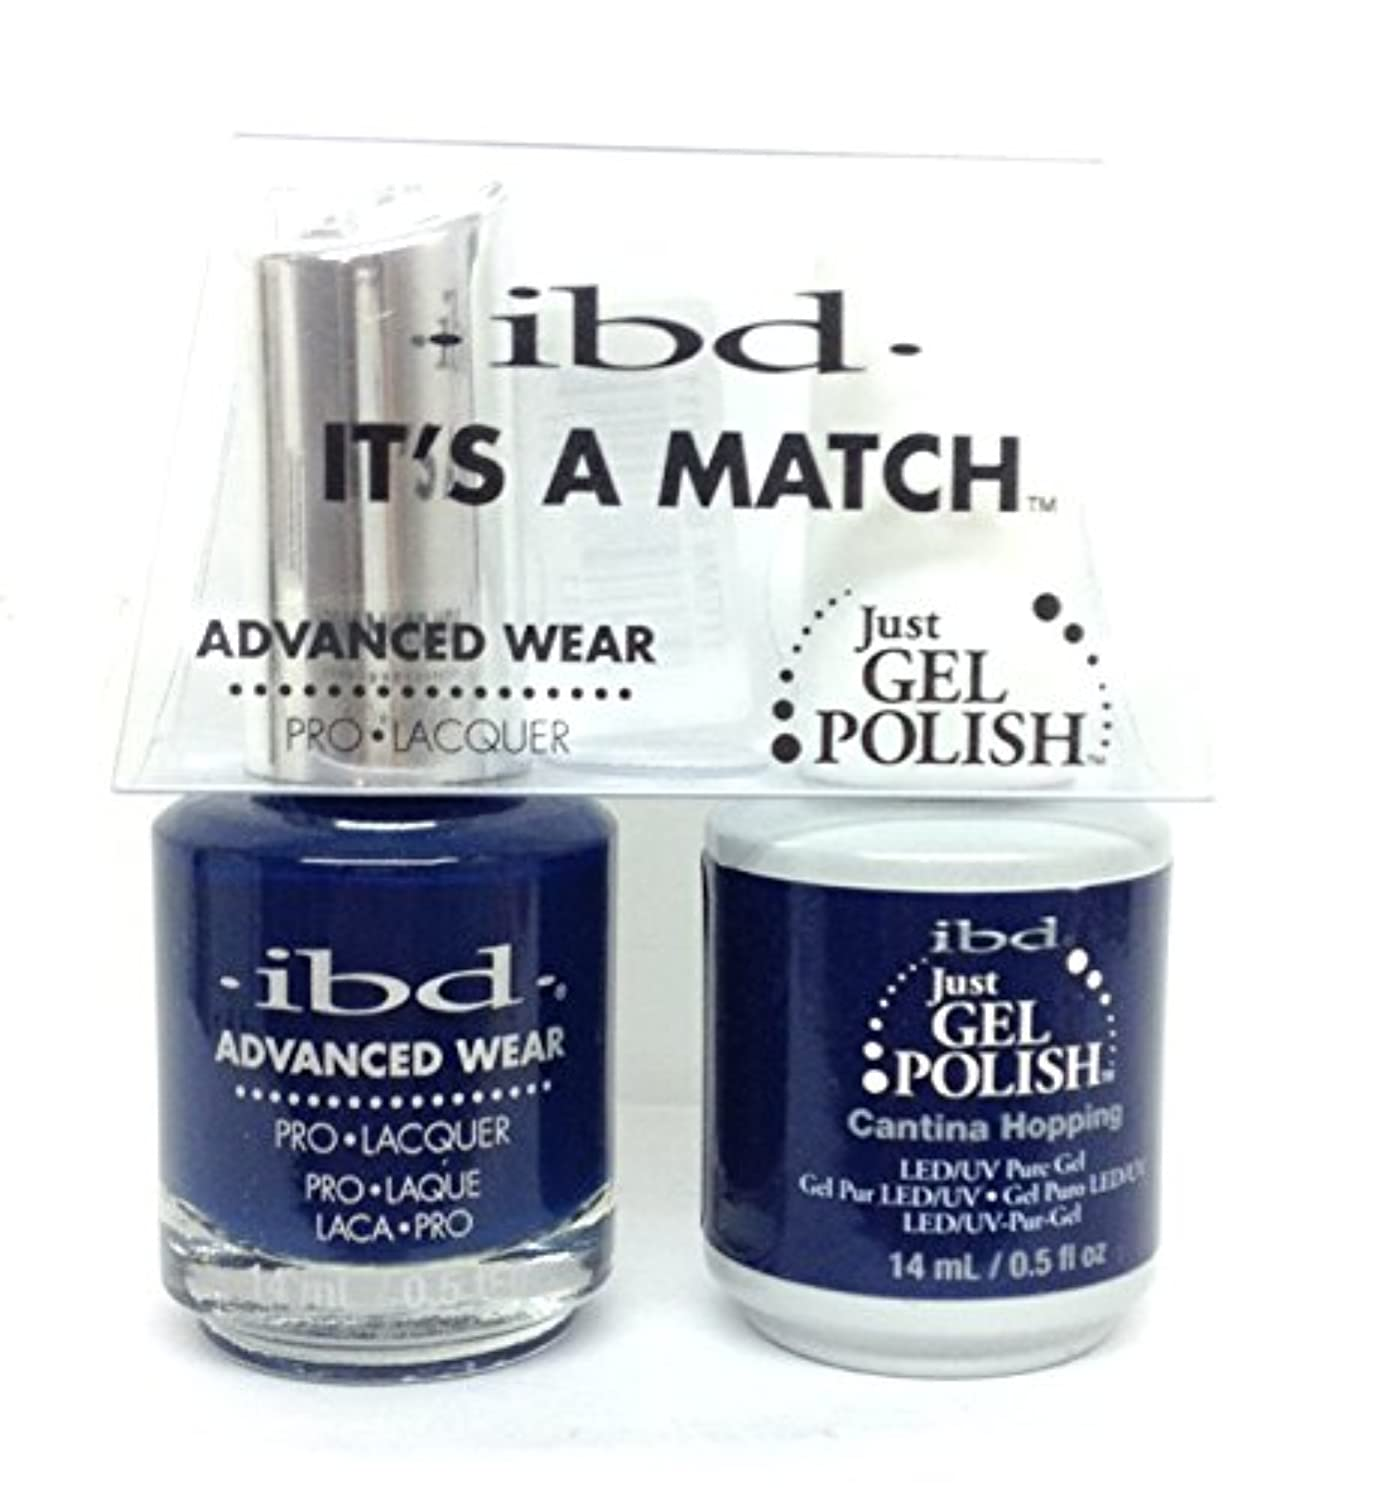 パキスタン人硬い説明するibd - It's A Match -Duo Pack- Love Lola Collection - Cantina Hopping - 14 mL / 0.5 oz Each